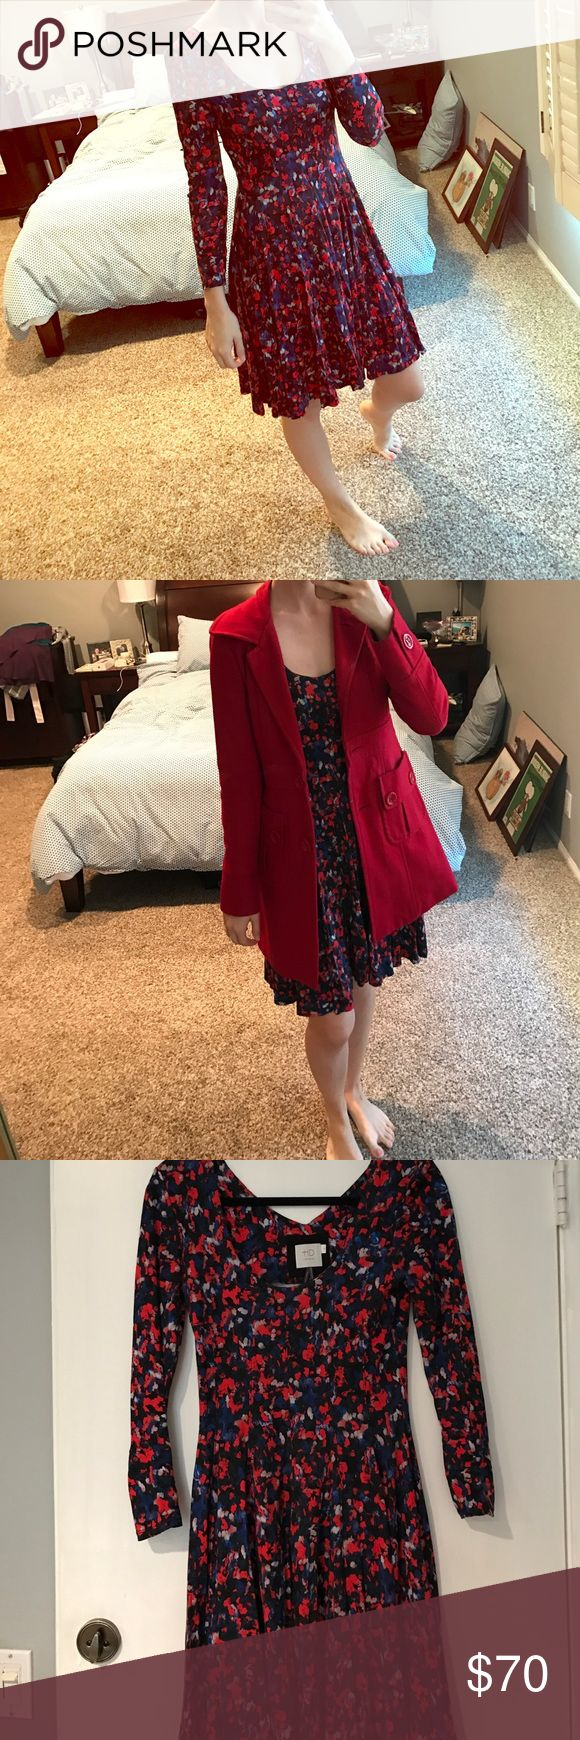 Floral anthropologie dress Beautiful and soft! Can be worn from spring, fall, and winter. Red coat for sale in separate post Anthropologie Dresses Long Sleeve